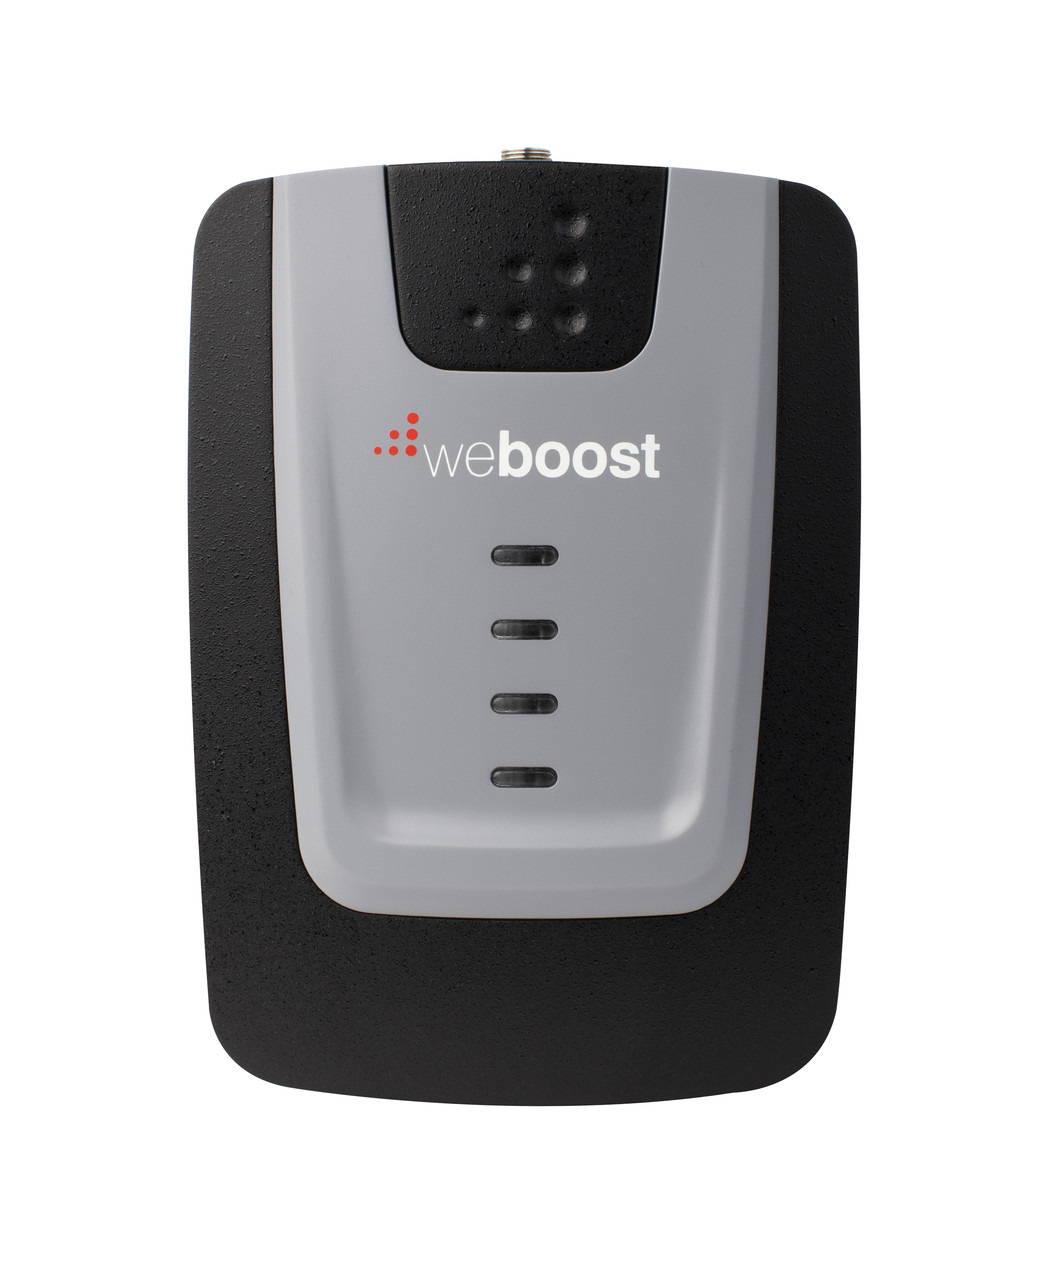 weboost home 4g 4g cell phone booster for home lobste